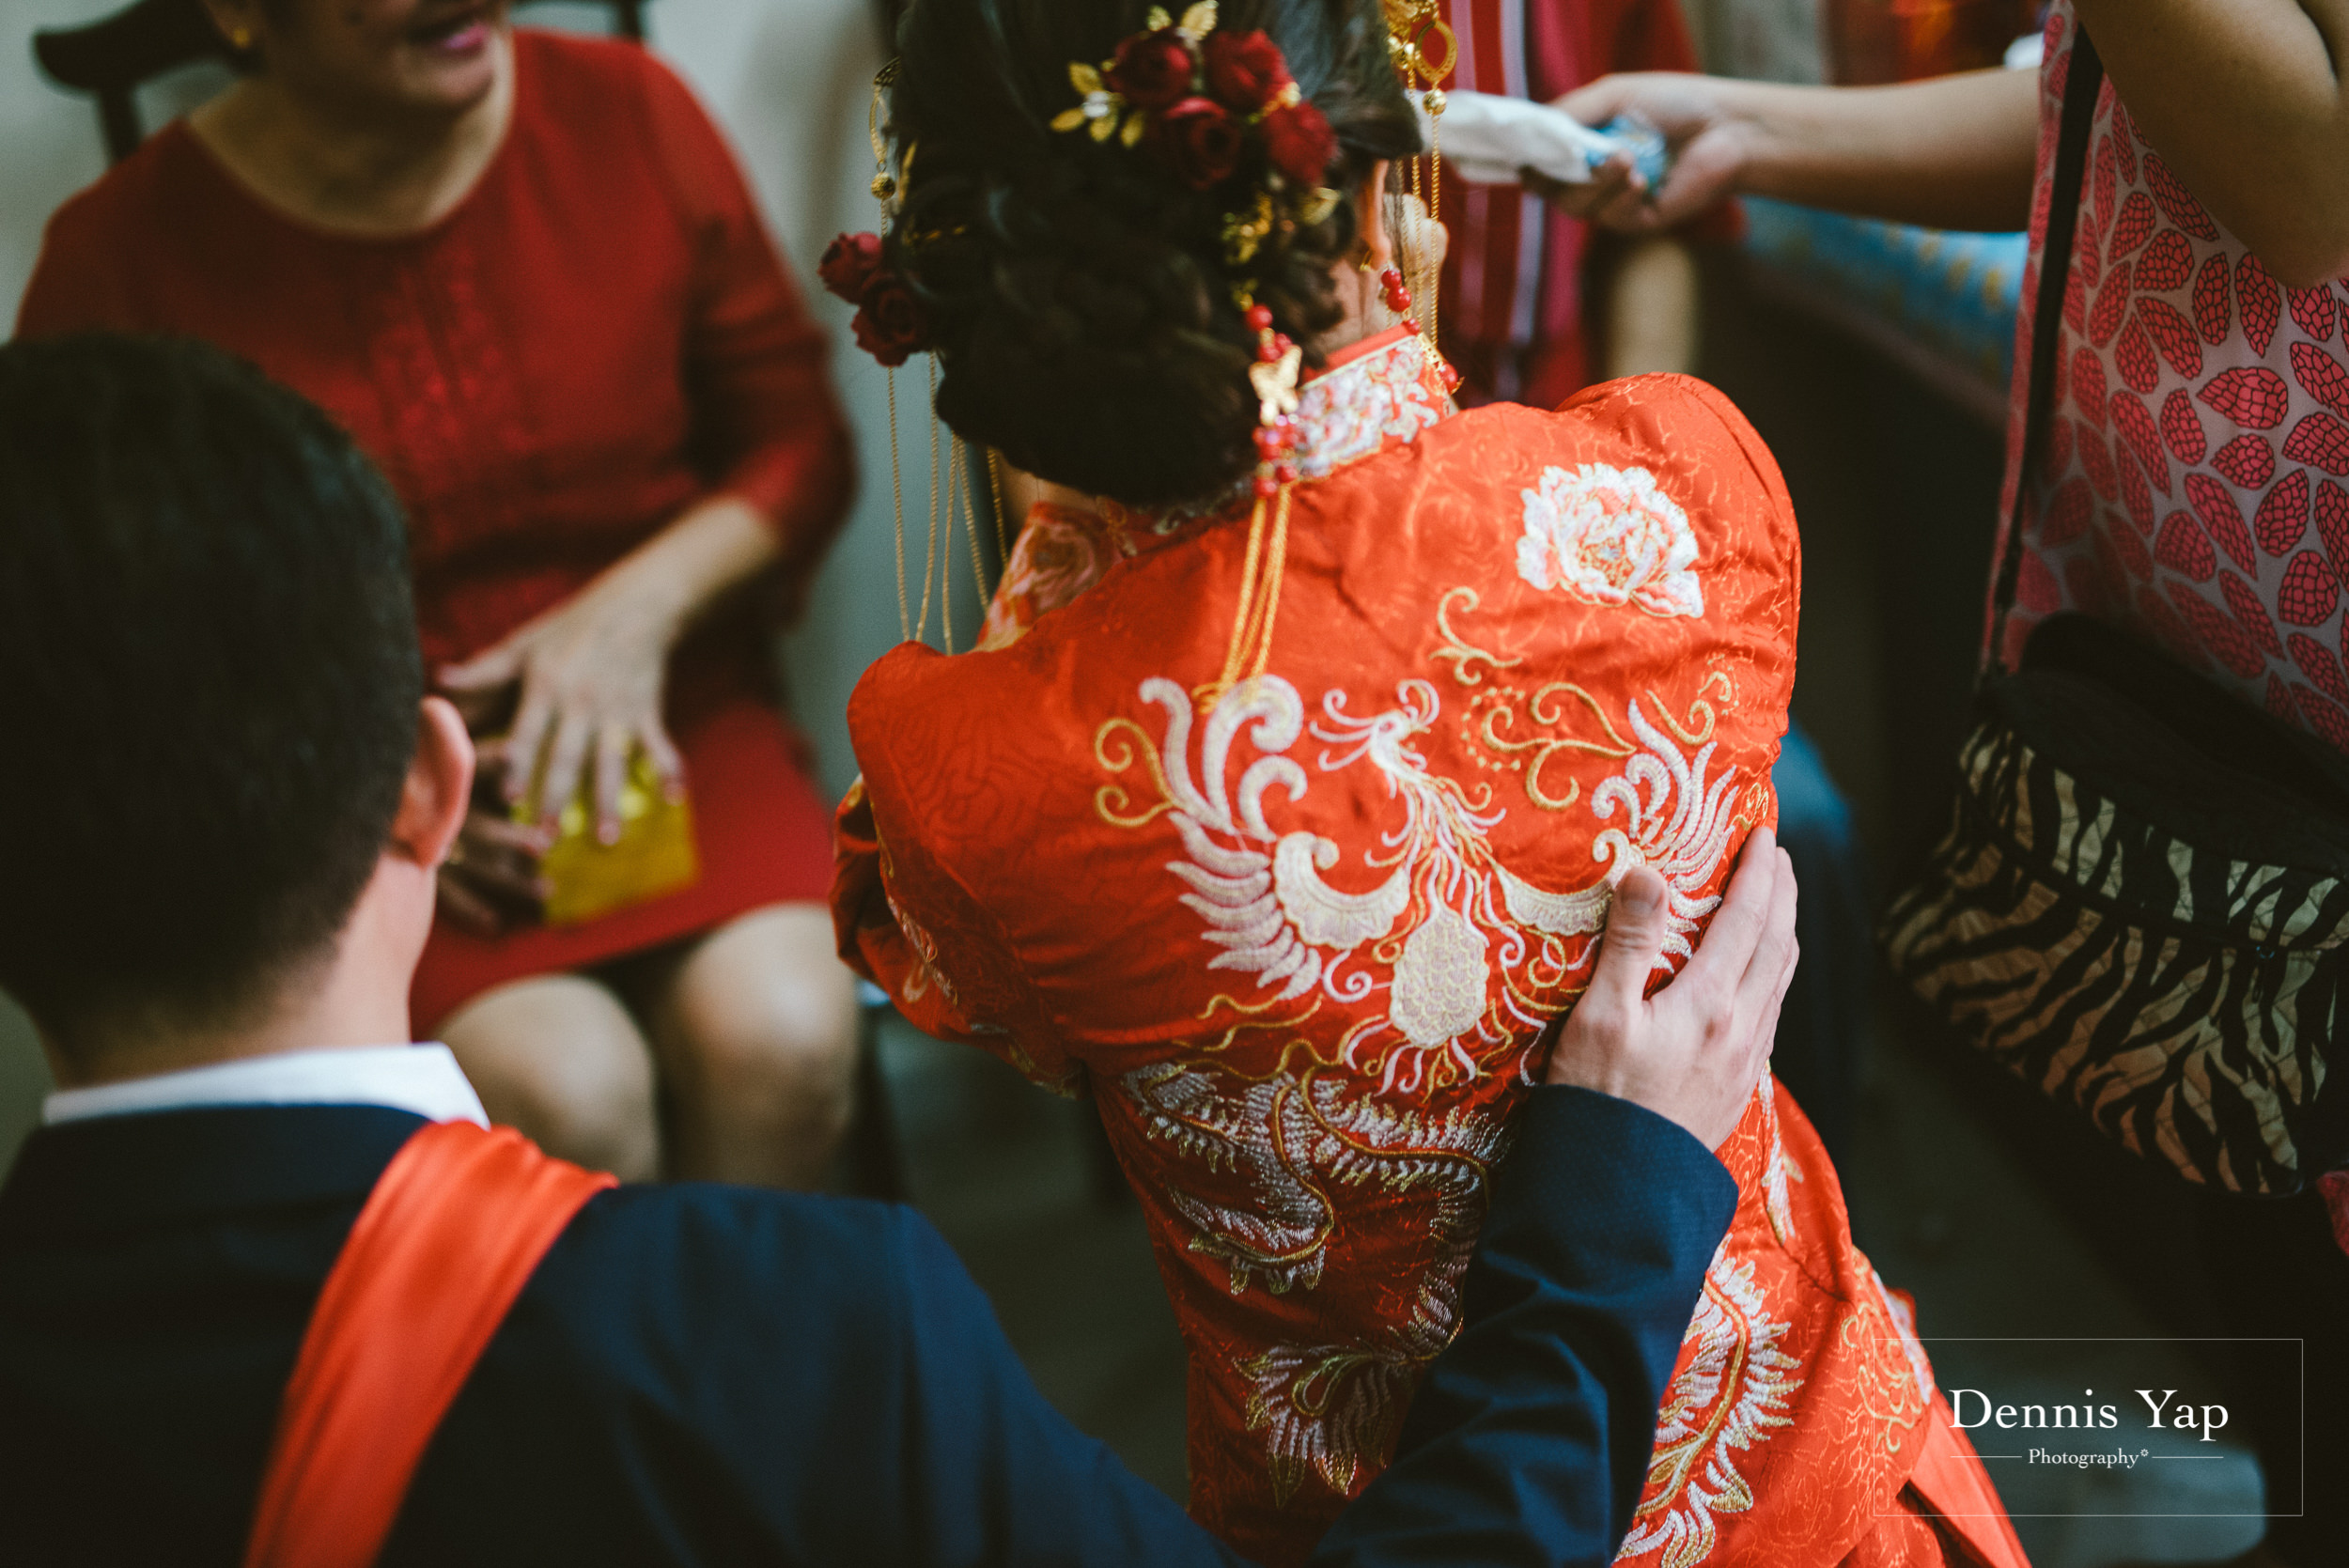 jimmy mellissa wedding day traditional chinese kua dennis yap photography-17.jpg